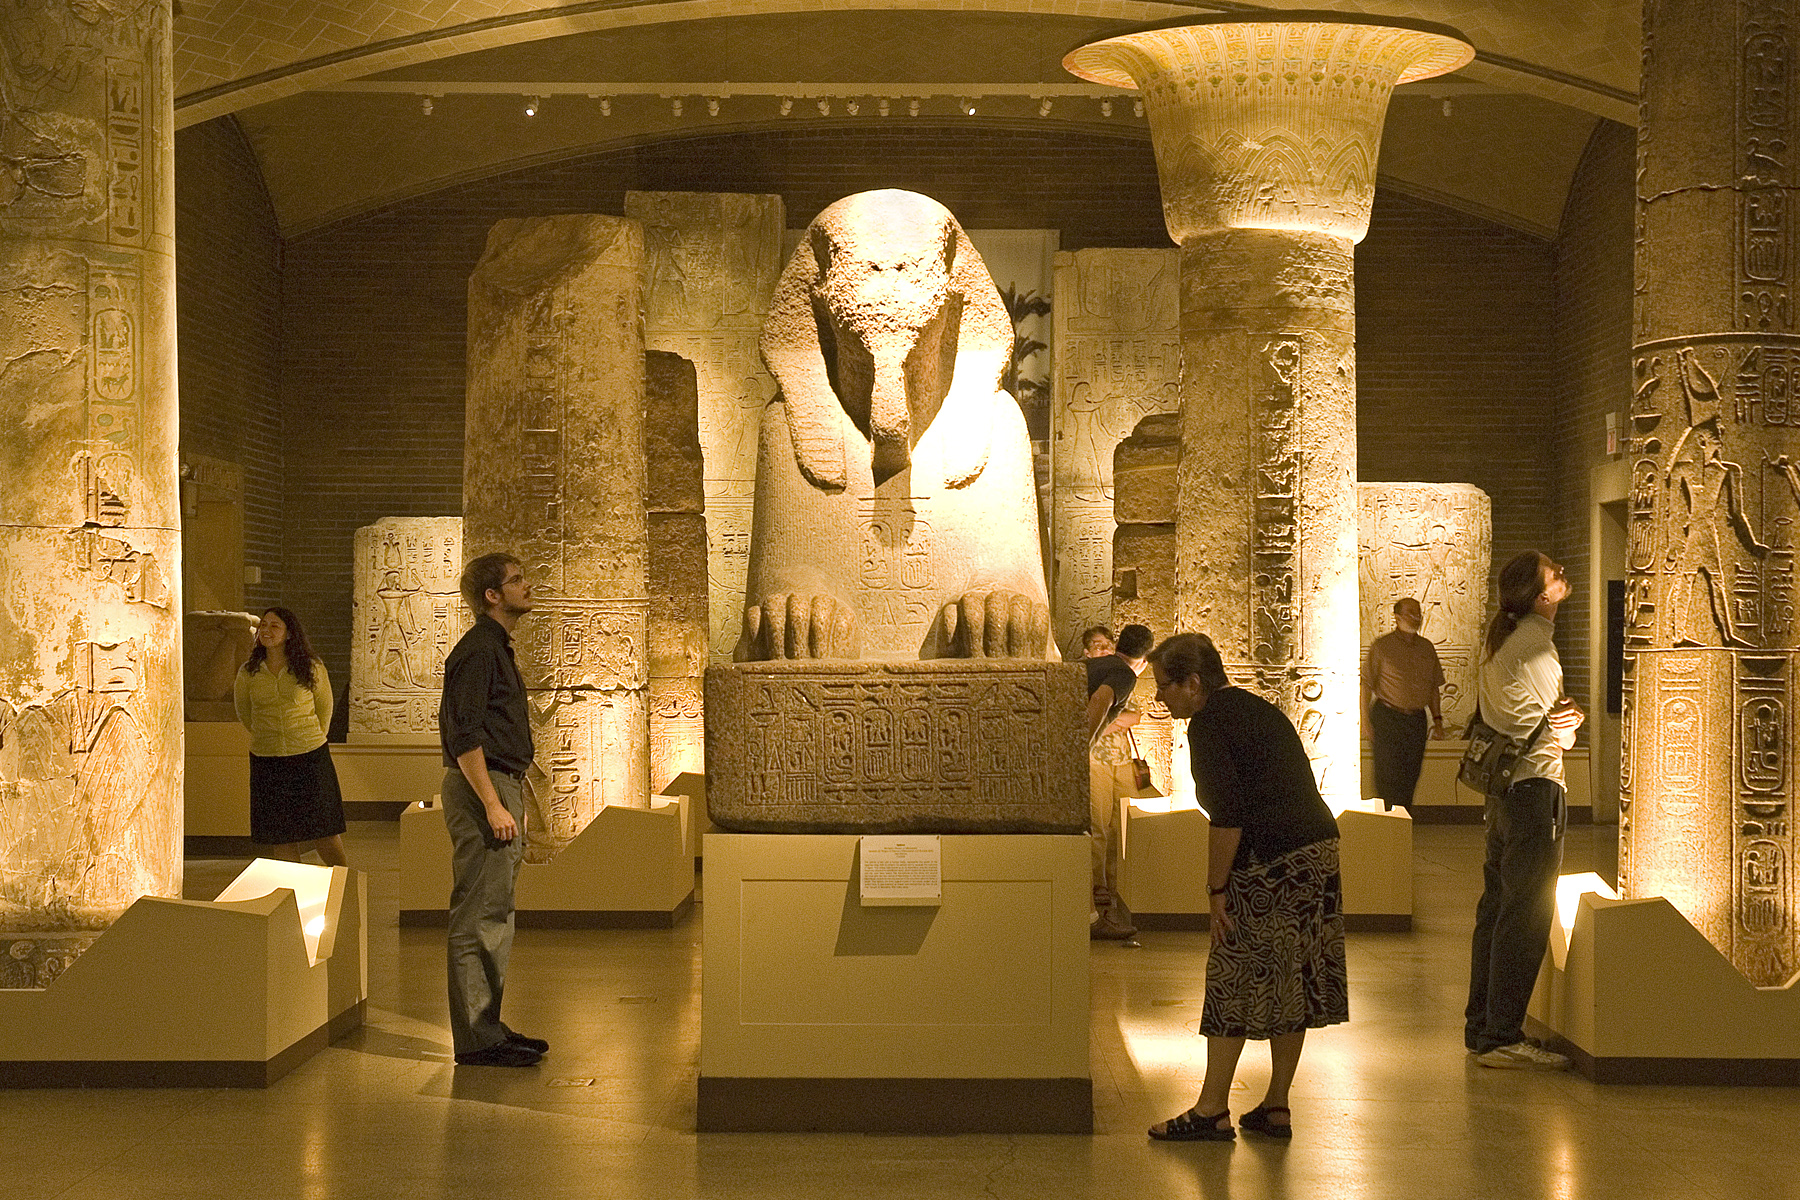 Visitors to the Penn Museum explore the Egyptian gallery and its centerpiece, the Sphinx of Ramesses II from Memphis, Egypt—the sixth-largest granite sphinx in the world, and the largest in the western hemisphere. The gallery is closing for several years of renovations, conservation, and reinstallation. Photo by Lauren Hansen-Flaschen.